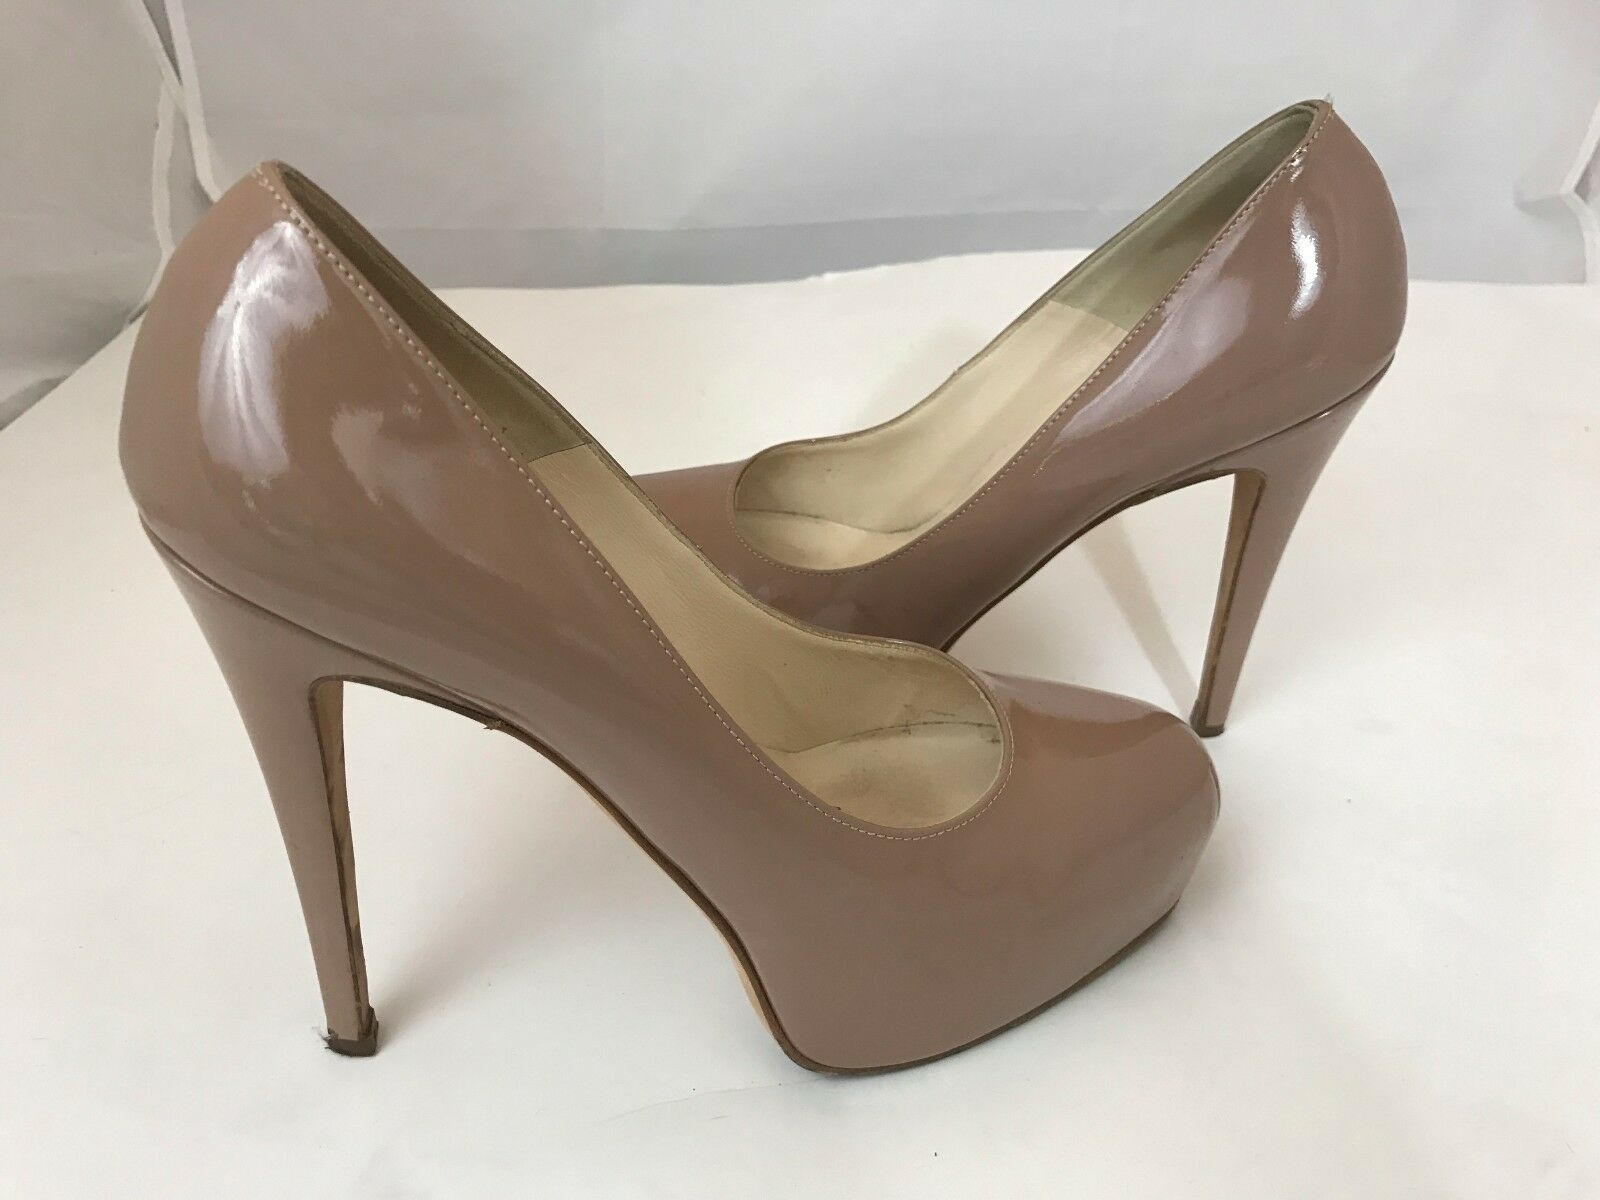 BRIAN ATWOOD 10617 NUDE PATENT 38.5 LEATHER PLATFORM PUMPS SZ 38.5 PATENT 4a1454